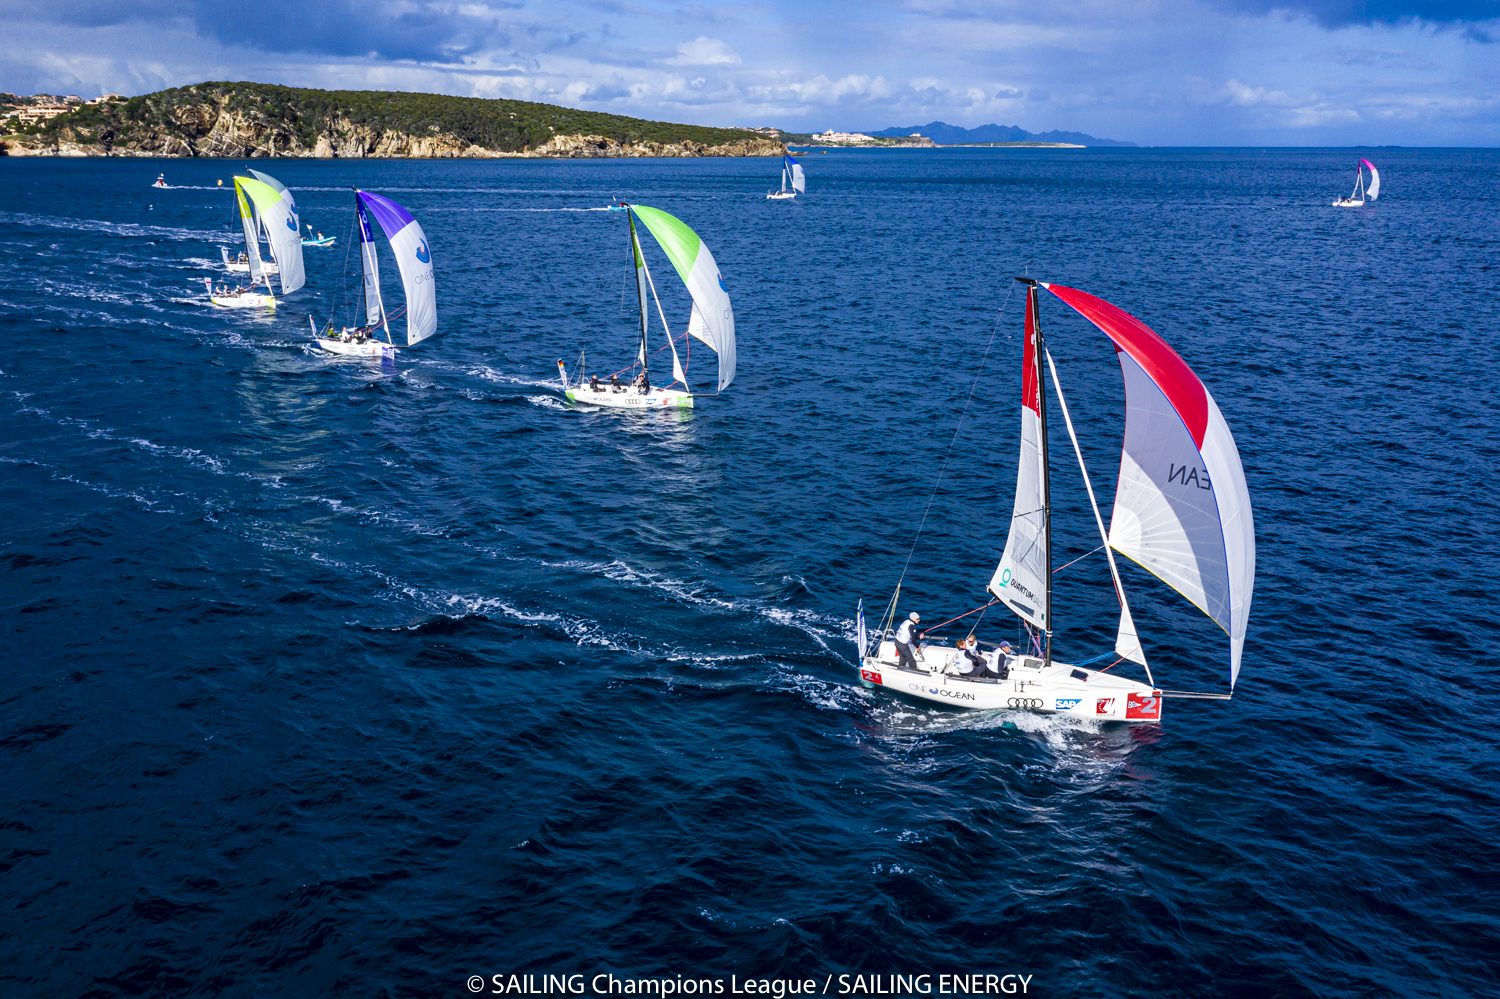 Audi SAILING Champions League Final, the Leaders change on day two - NEWS - Yacht Club Costa Smeralda